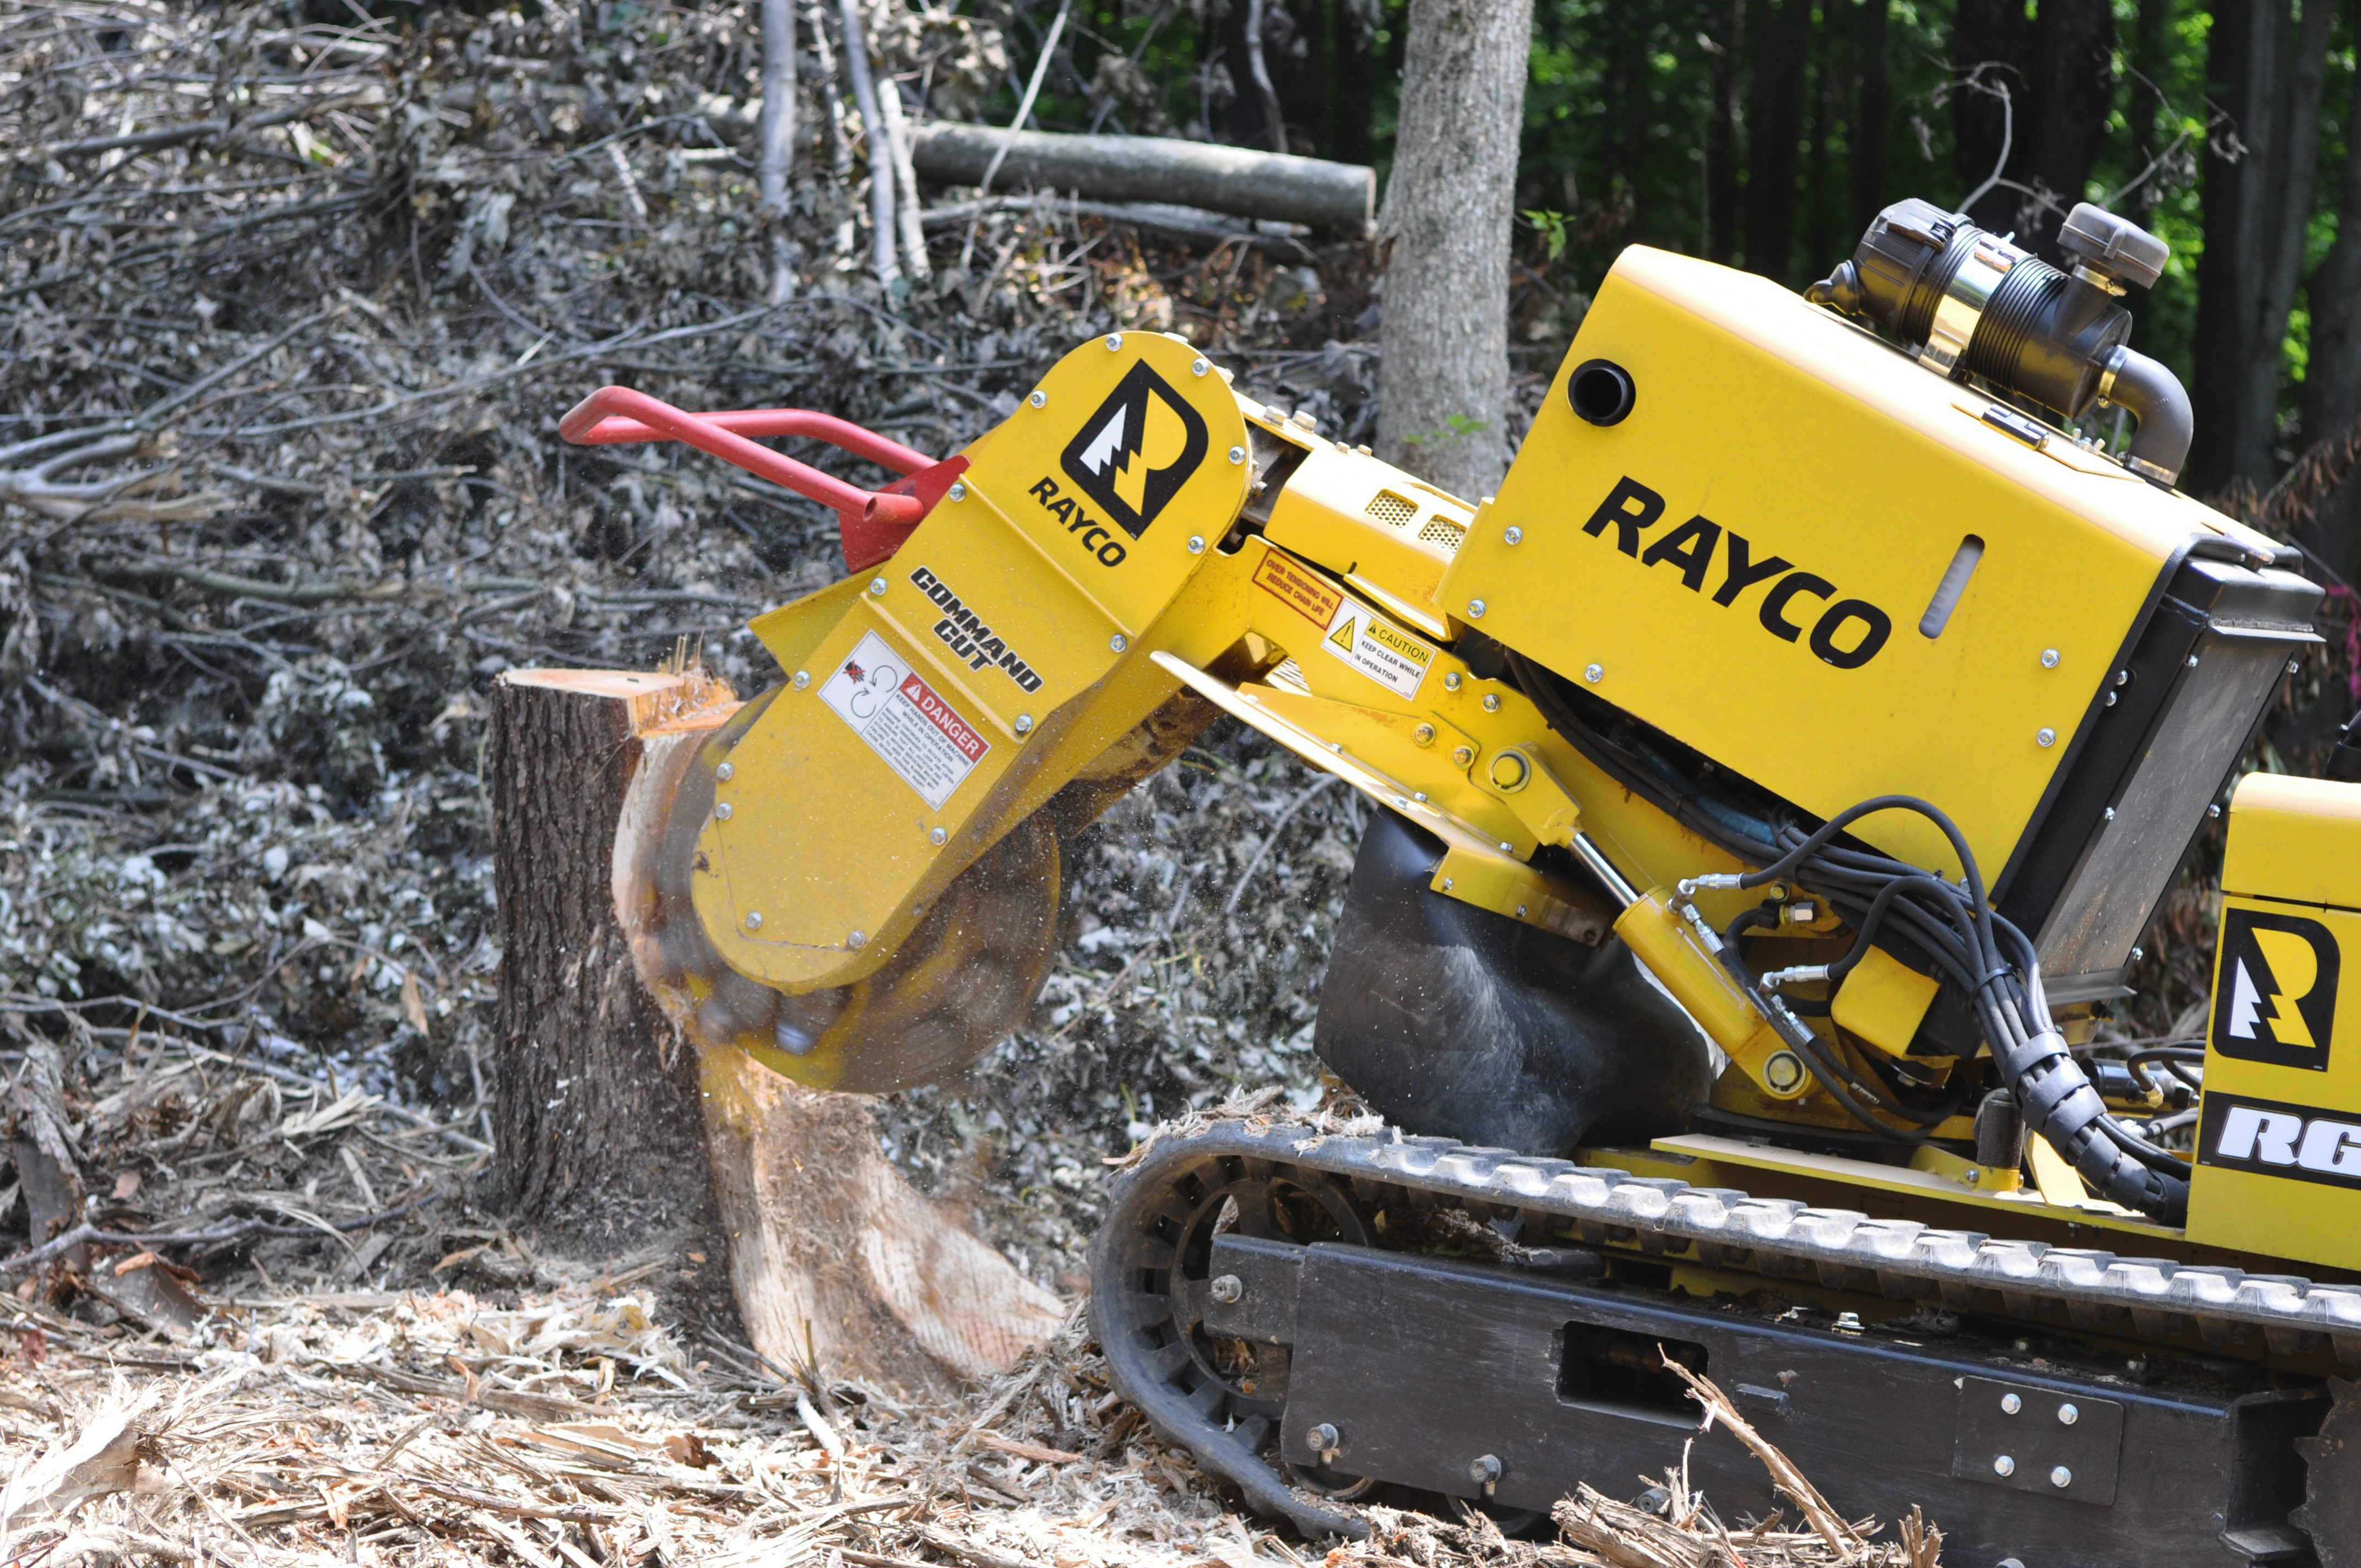 Rayco Stump Cutter For Sale Rent Or Lease In New Jersey